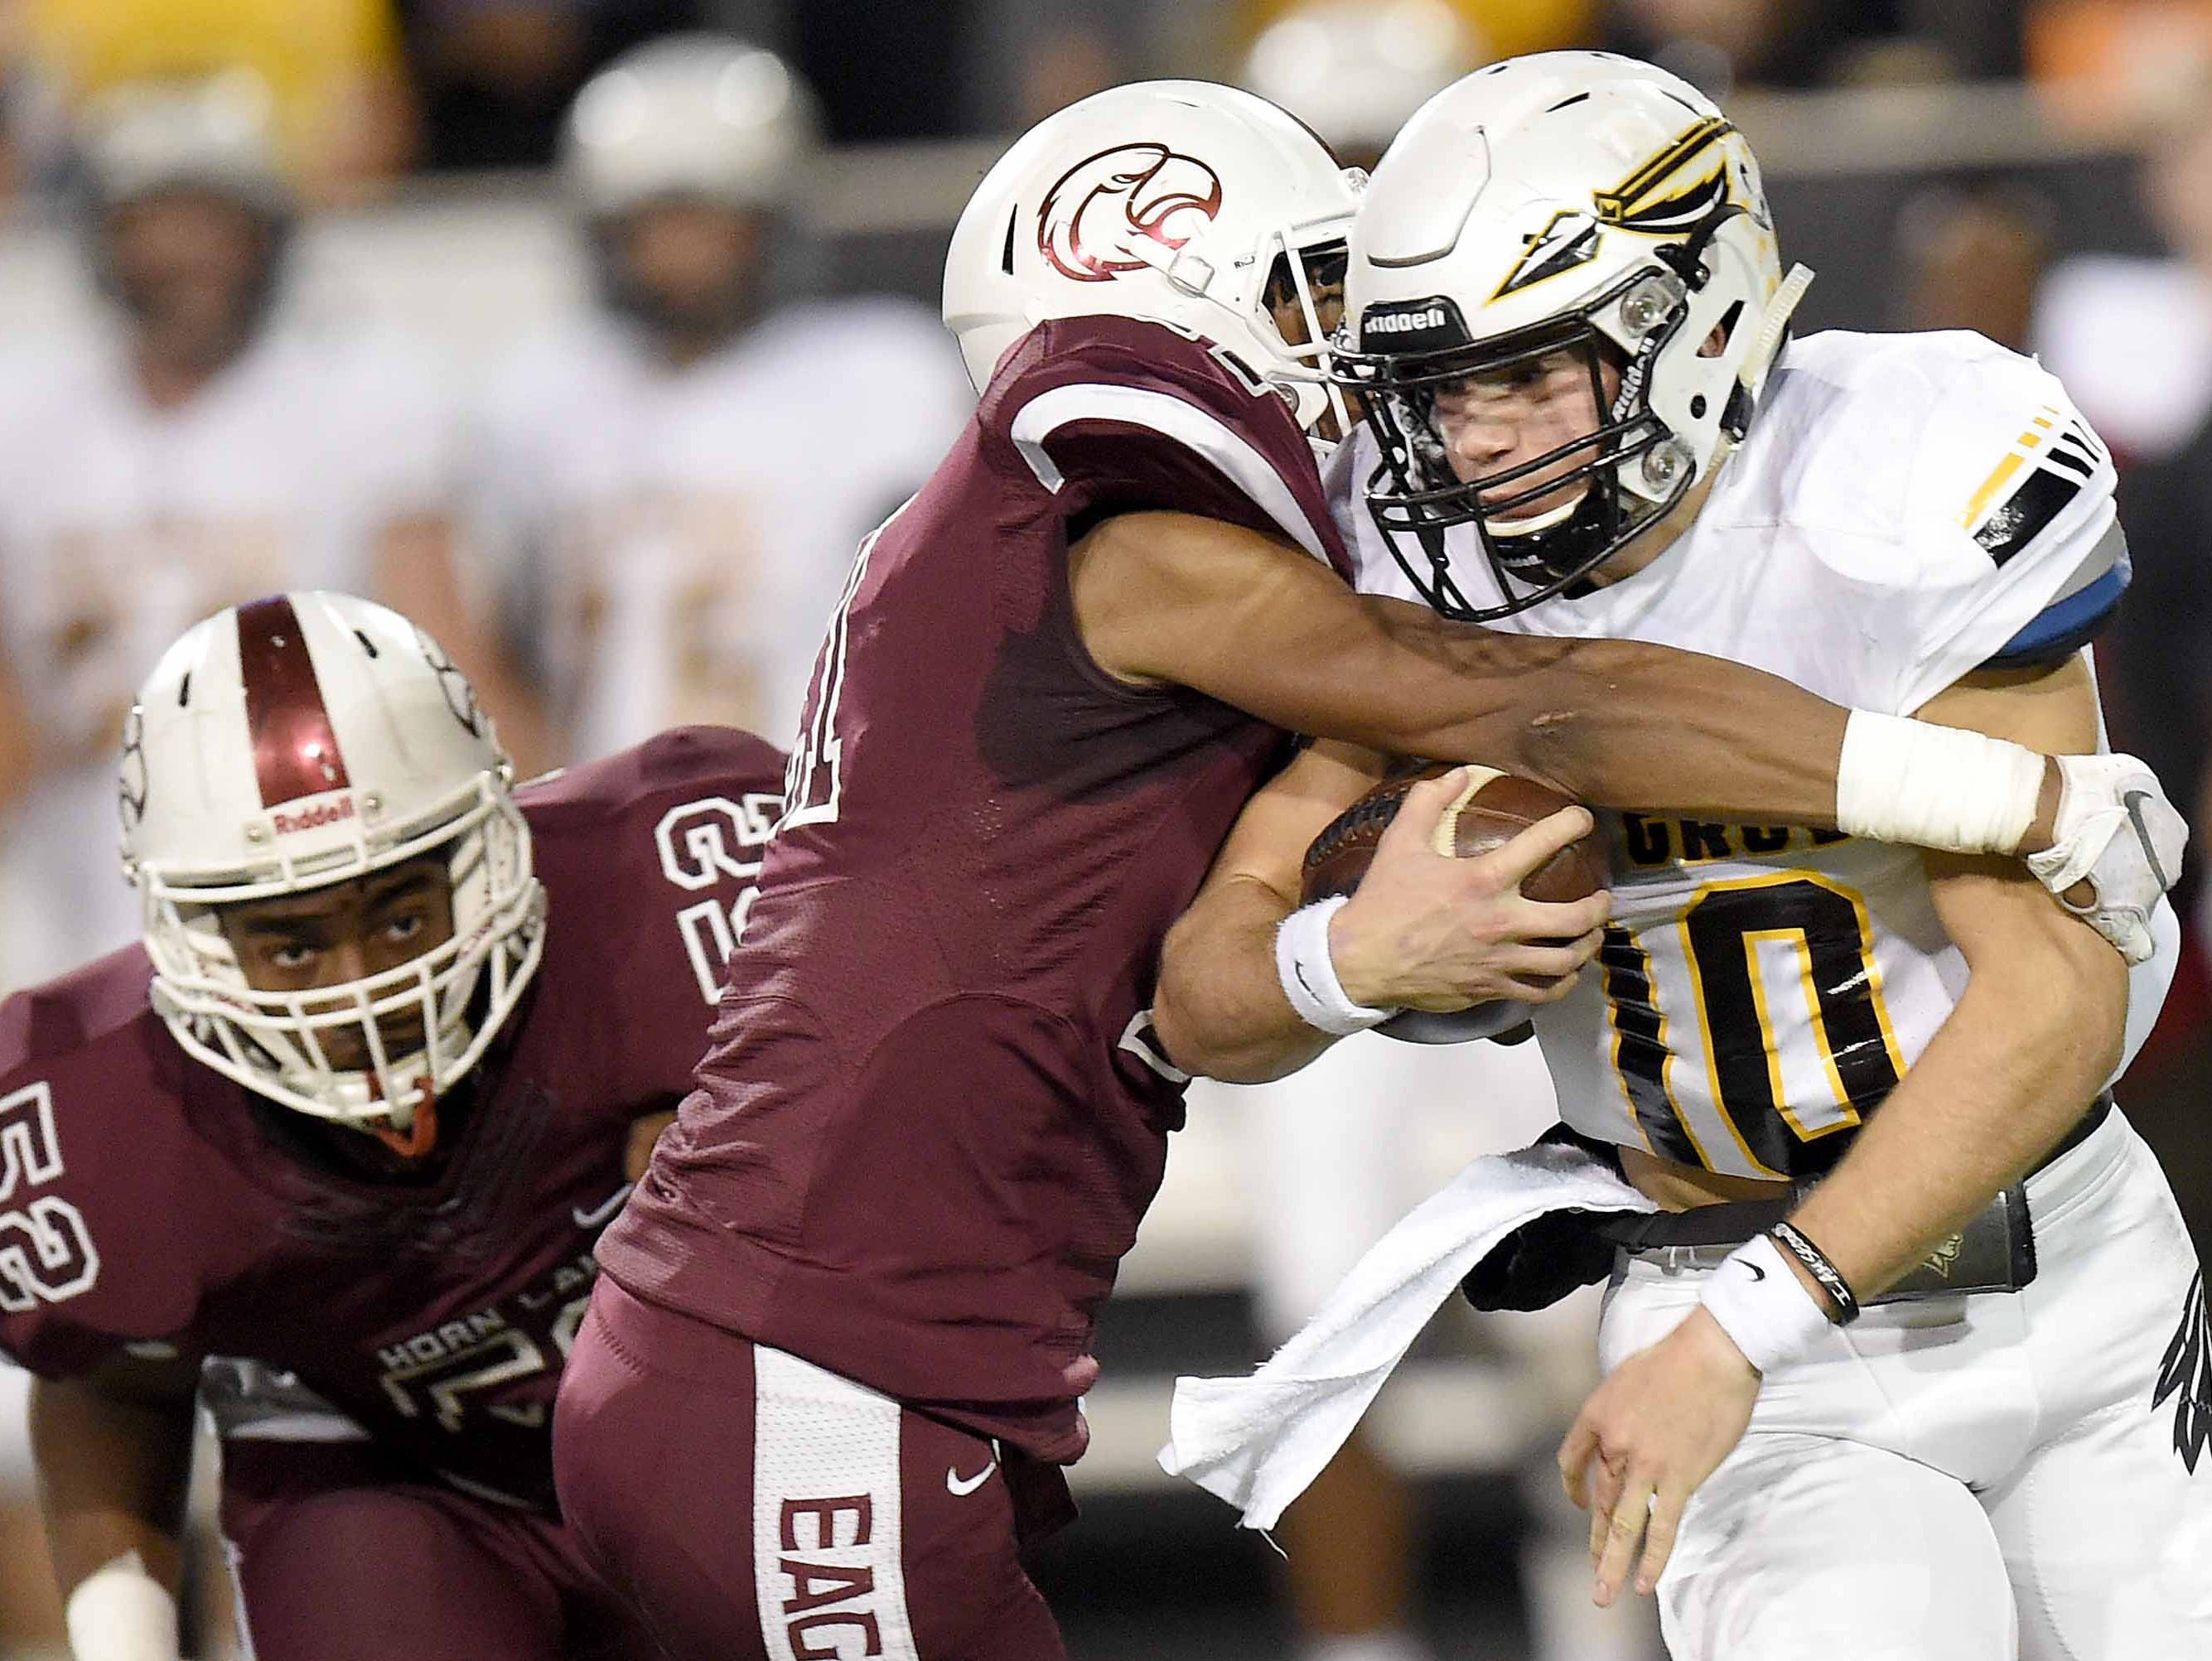 Oak Grove's John Rhys Plumlee (10) runs the ball against Horn Lake on Friday, November 20, 2018, in the MHSAA BlueCross BlueShield Gridiron Classic High School Football Championships in M.M. Roberts Stadium on the University of Southern Mississippi campus in Hattiesburg, Miss.